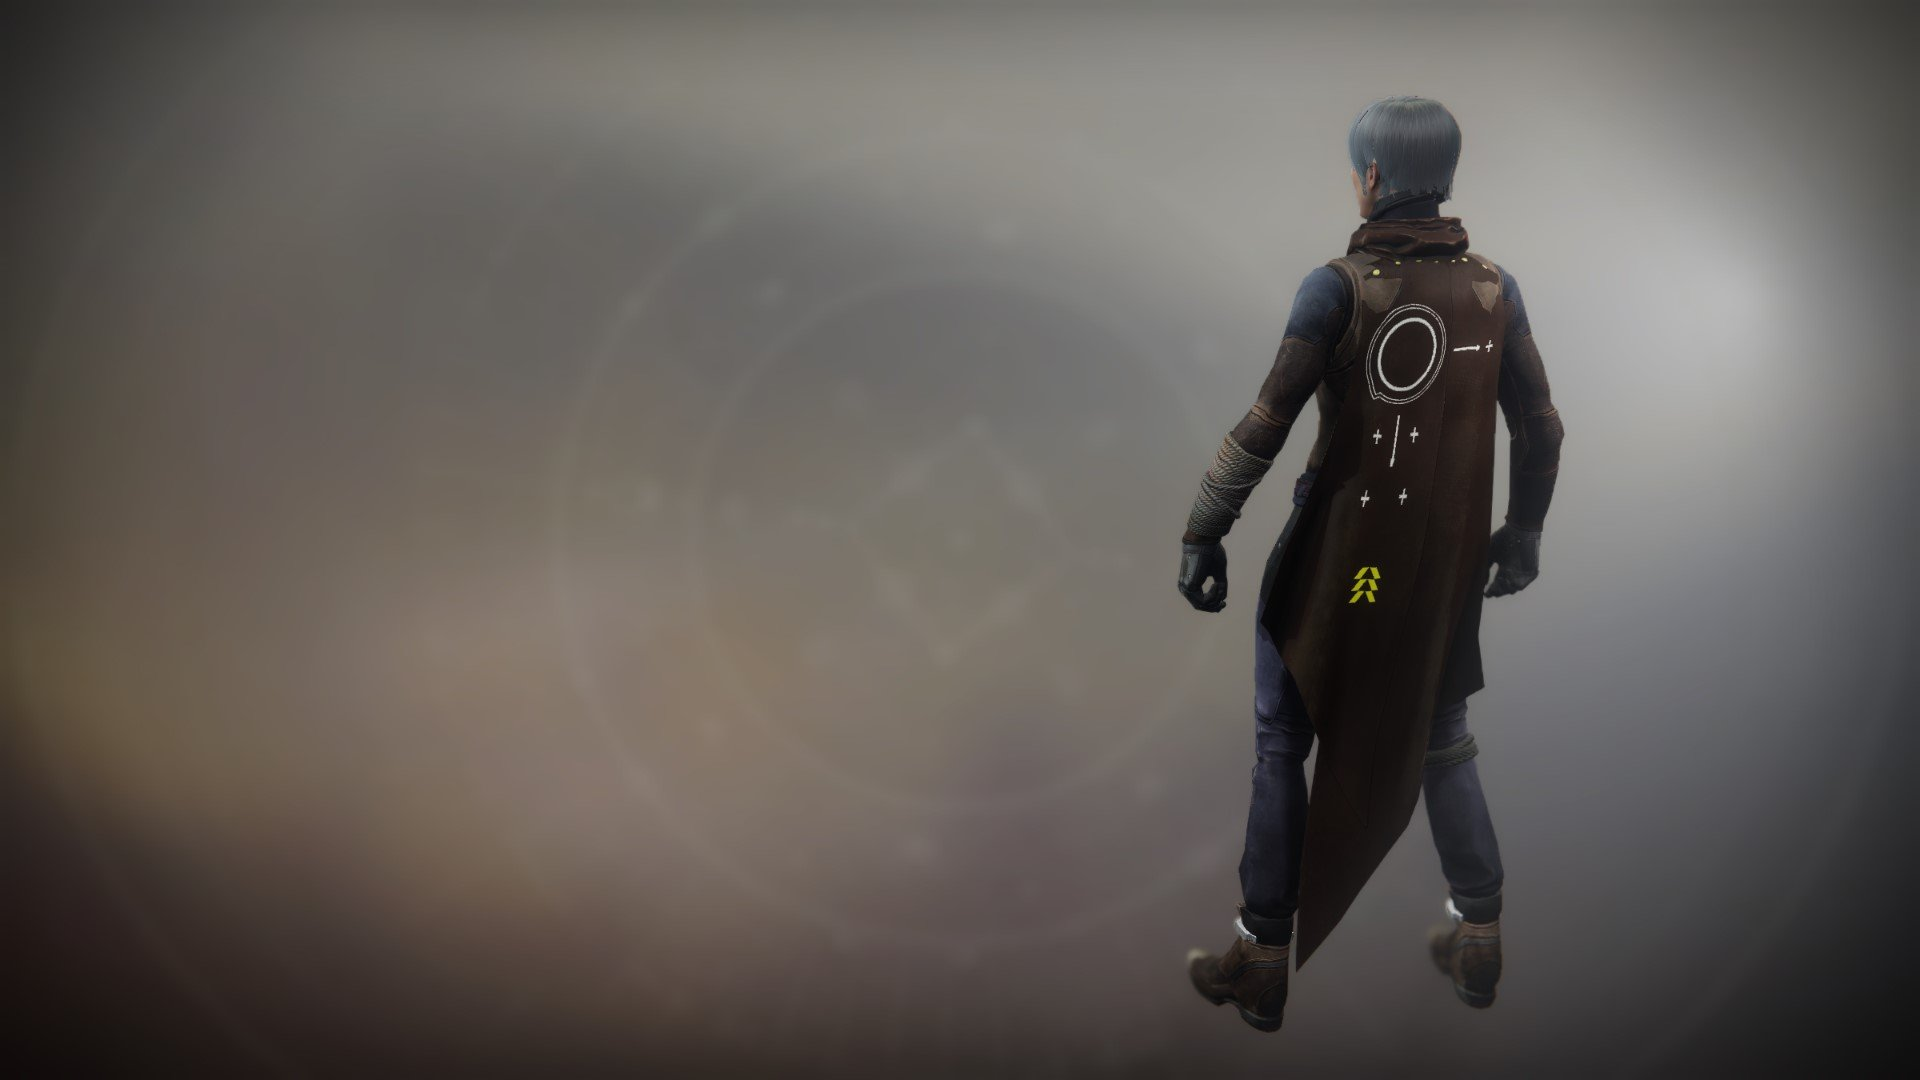 An in-game render of the Icarus Drifter Cape.